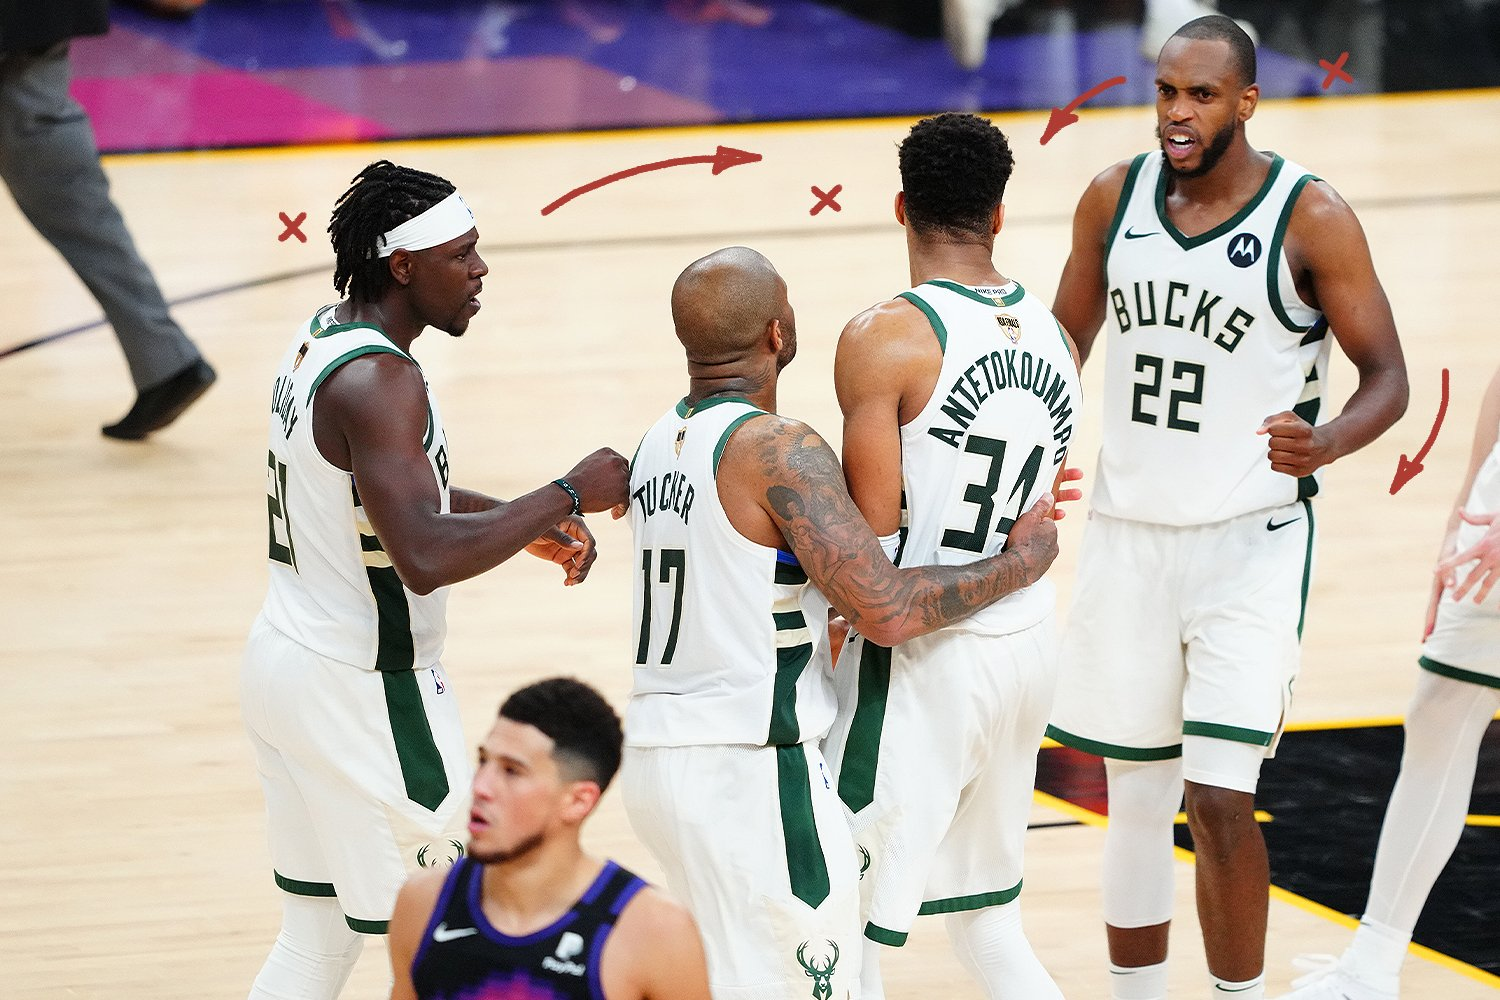 Bucks' Big 3 Here to Stay - Sports Section